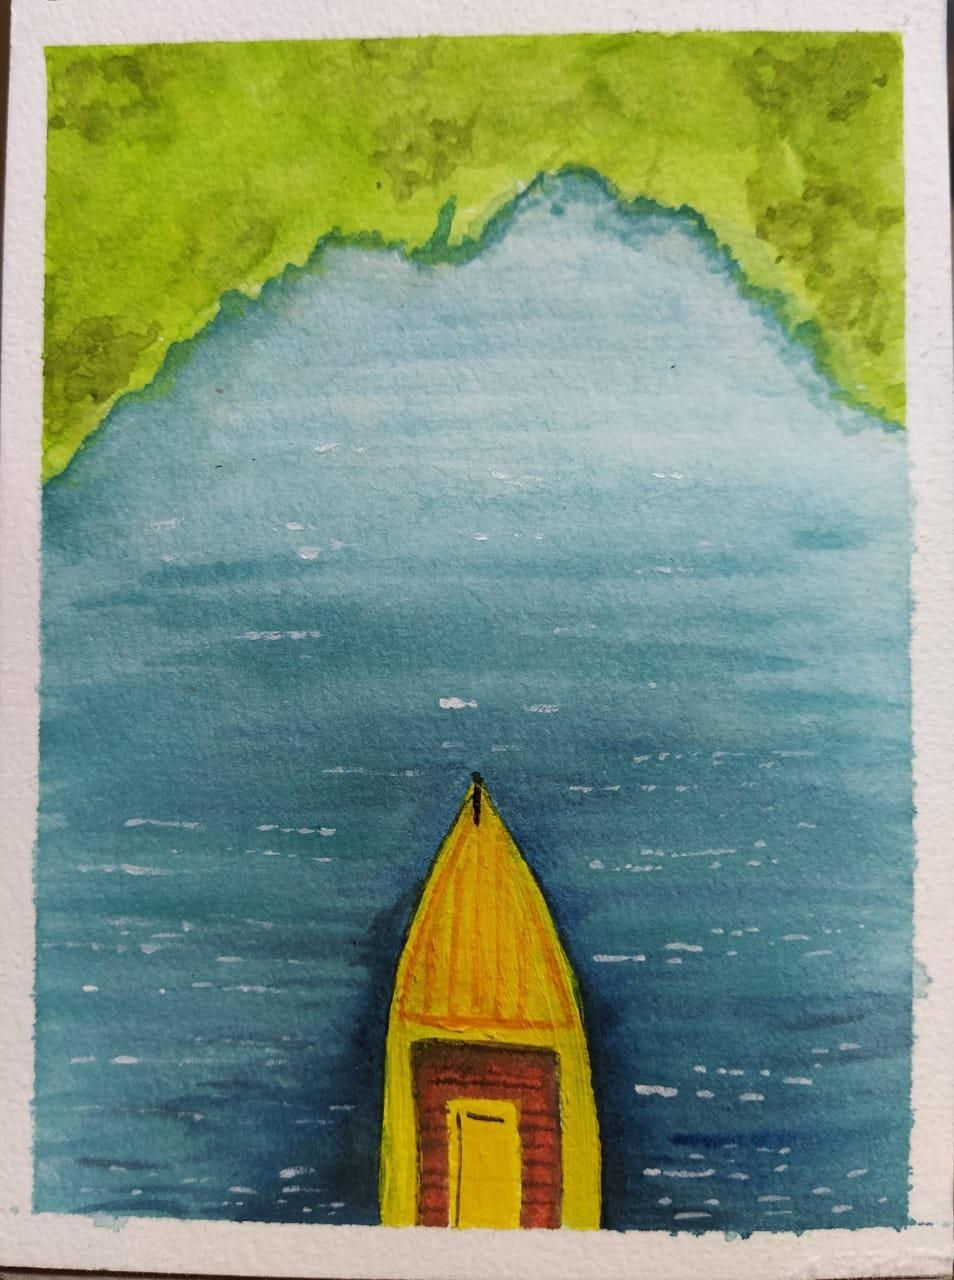 Paintings - image 1 - student project